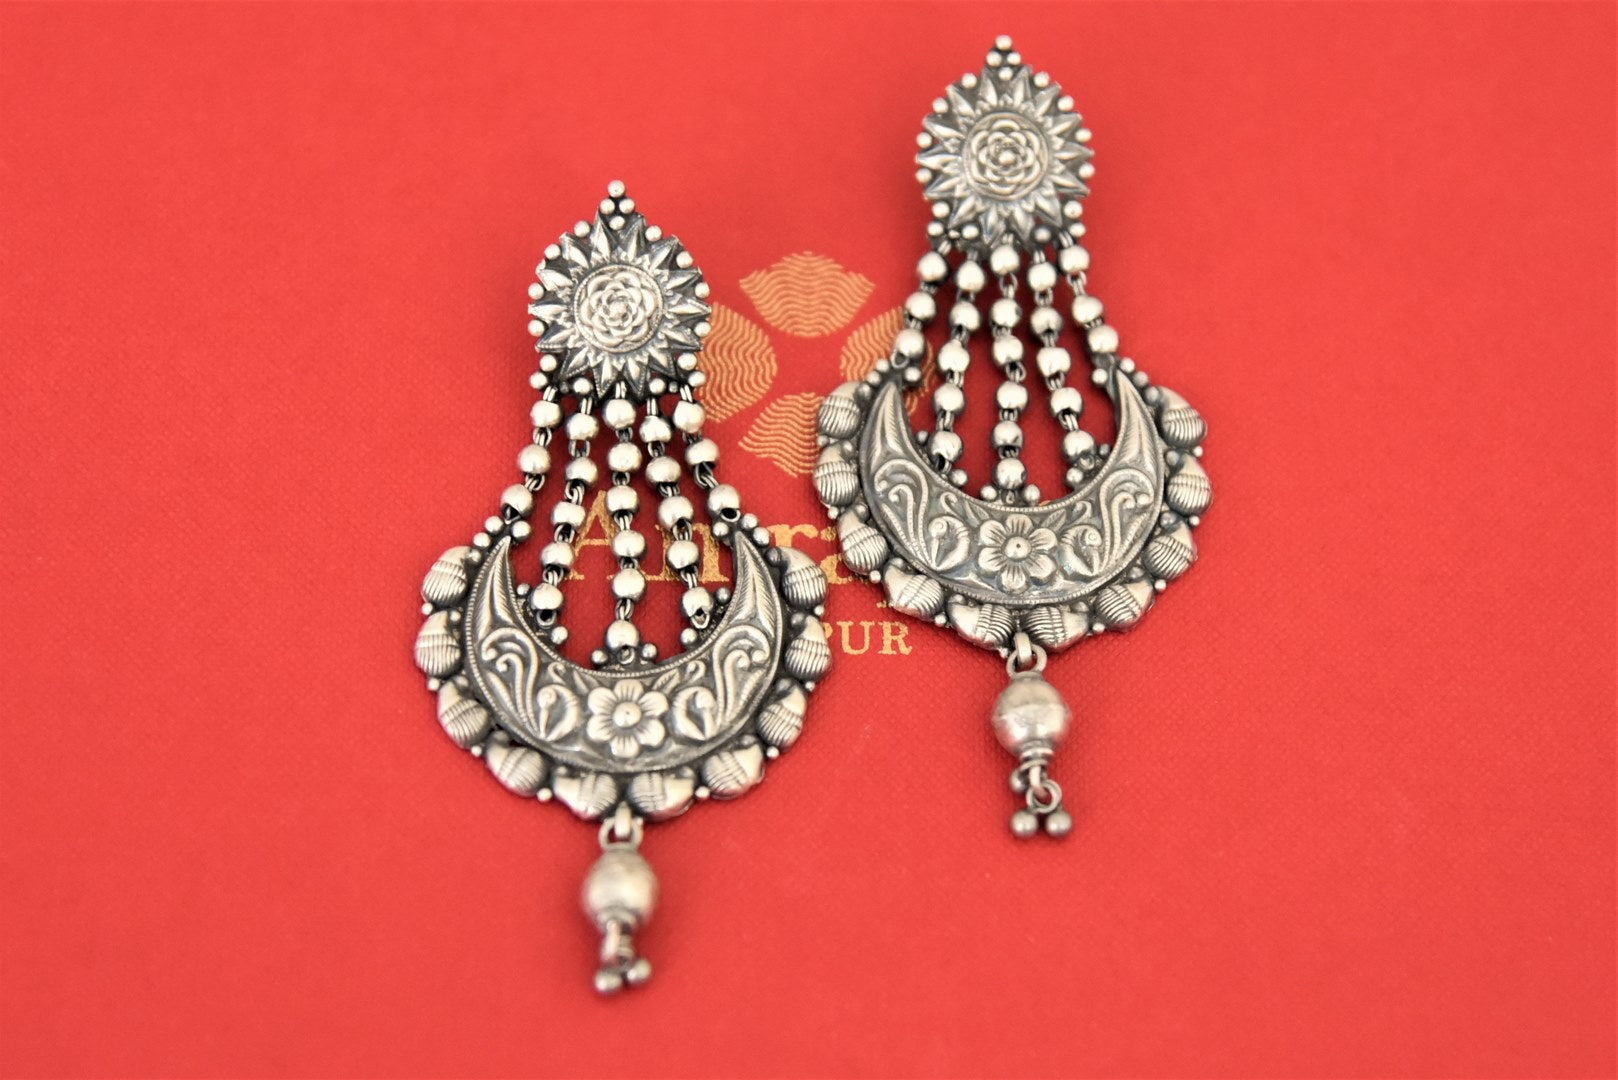 Buy Amrapali antique silver chandelier earrings online in USA. Complete your traditional style with exquisite silver jewelry from Pure Elegance Indian fashion store in USA.-flatlay